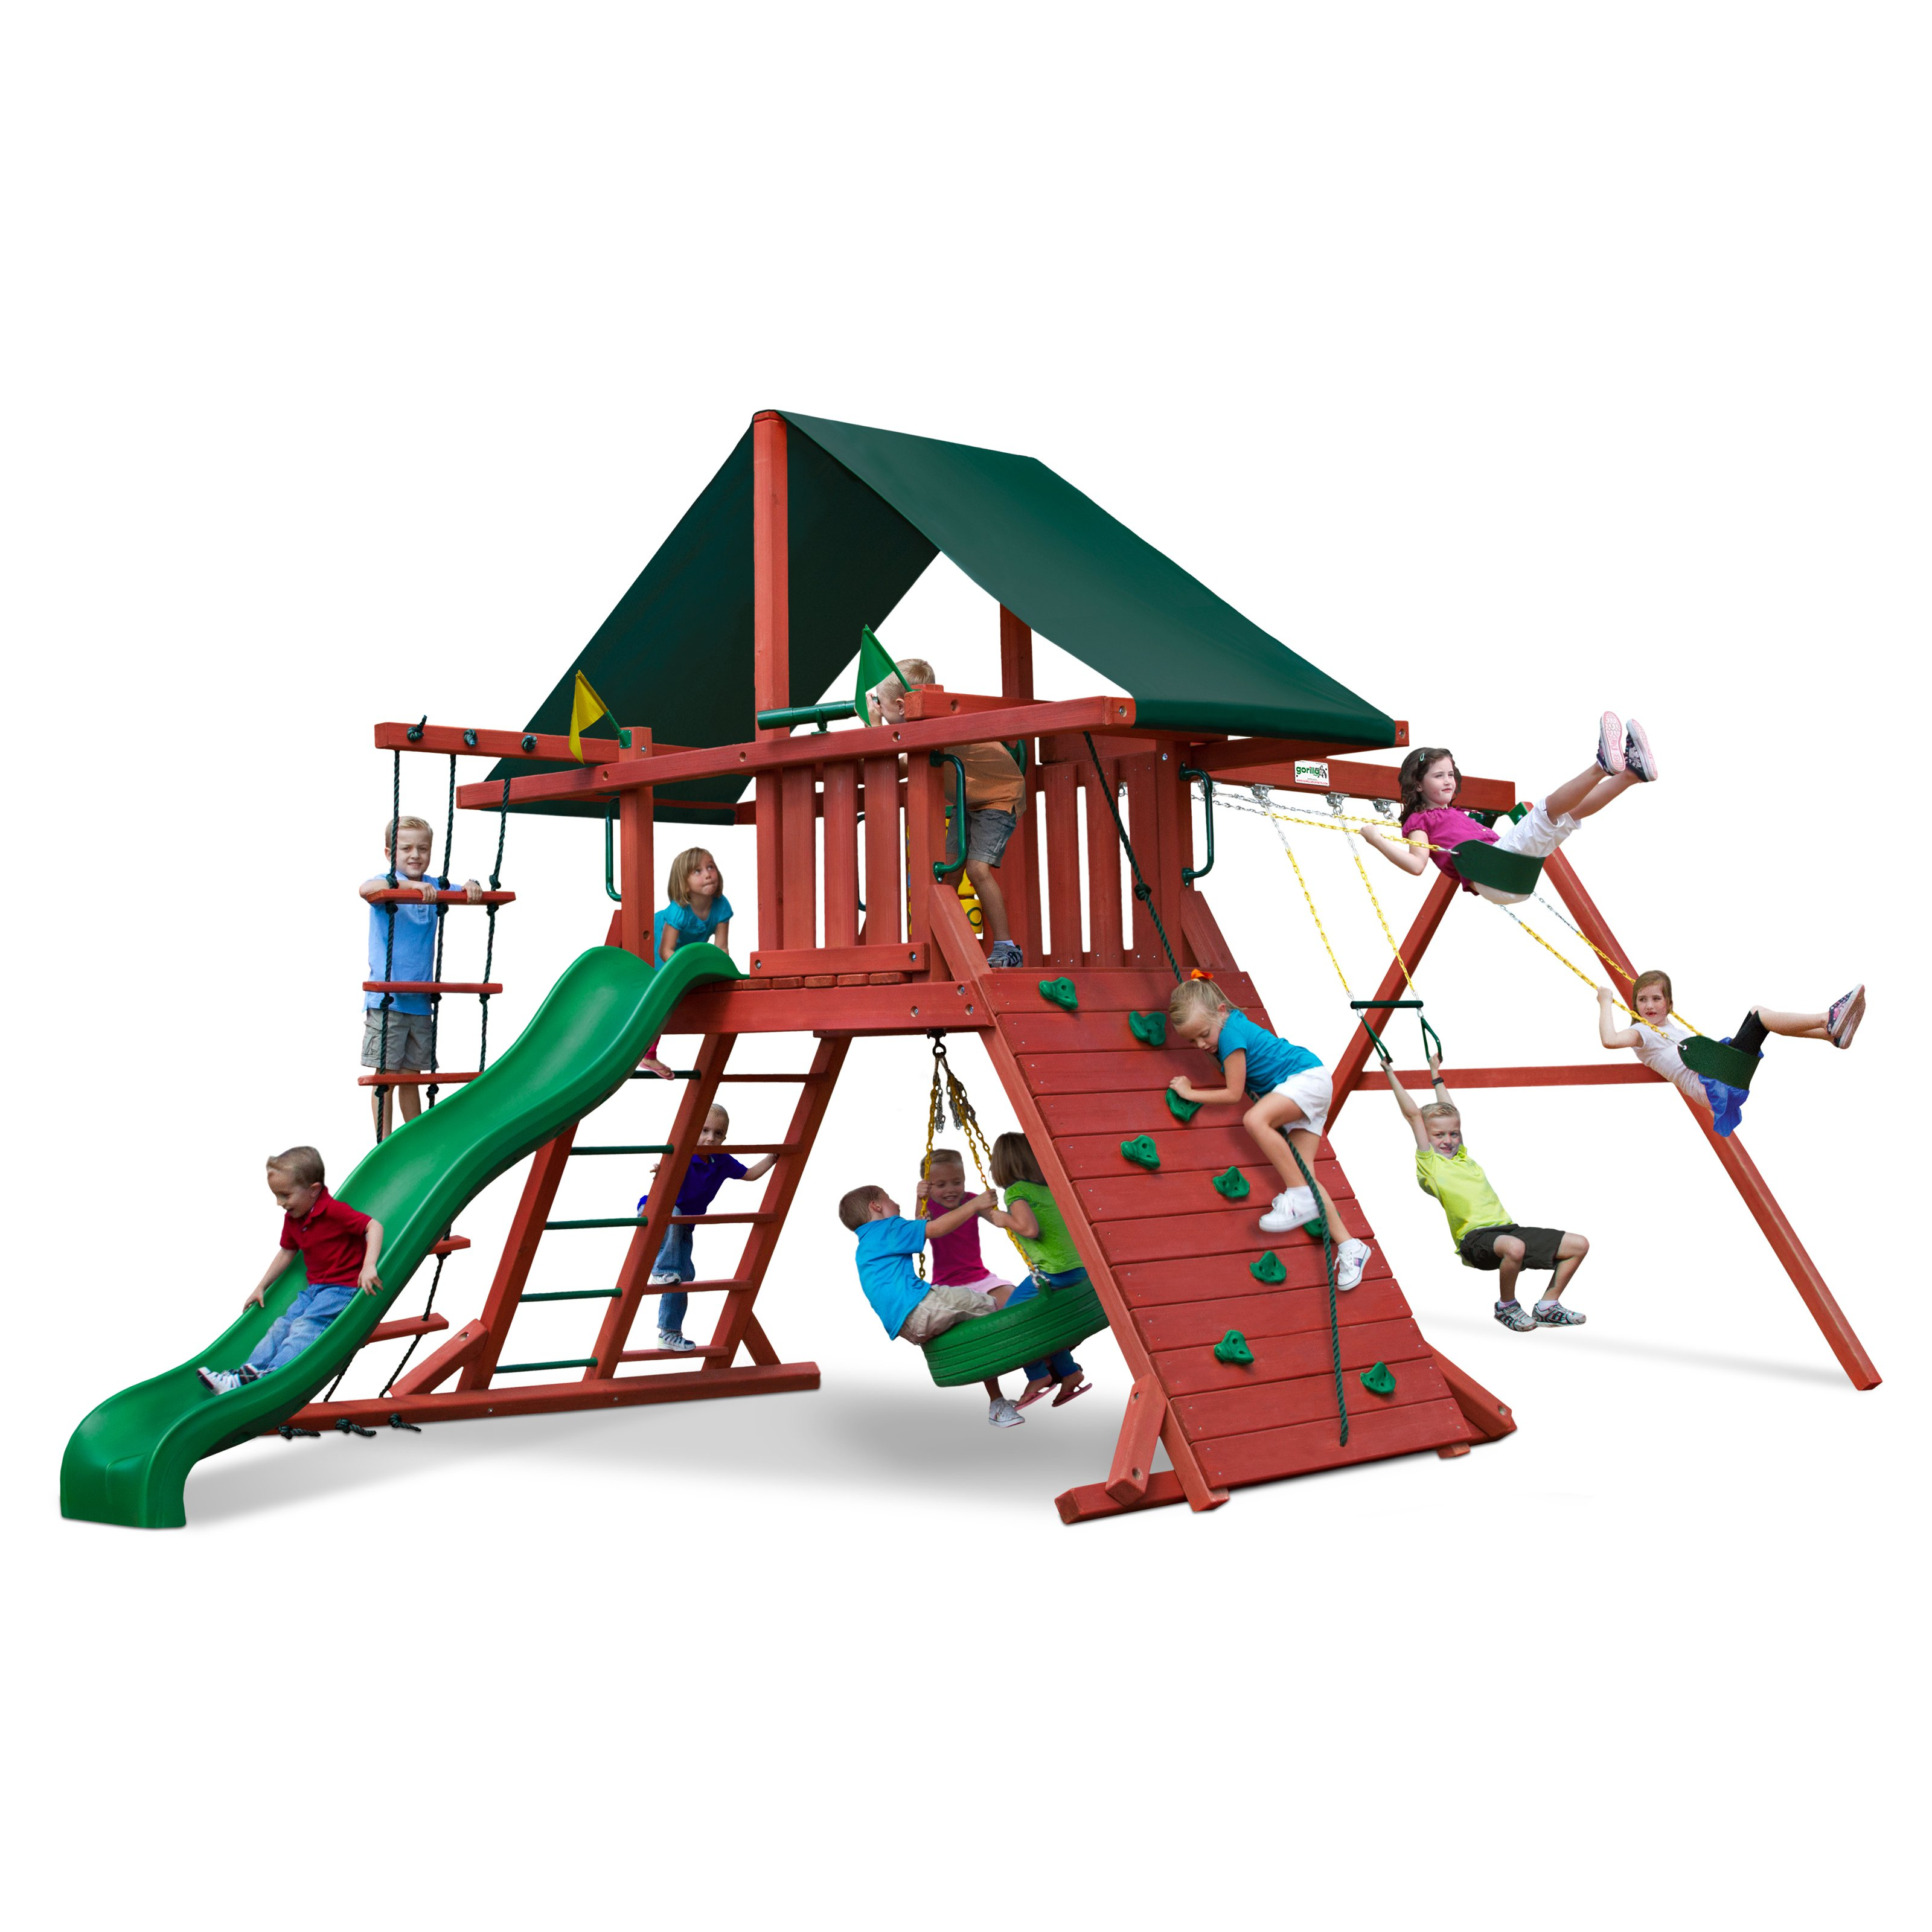 Gorilla Playsets Sun Climber I Wood Swing Set with Canvas Green Canopy